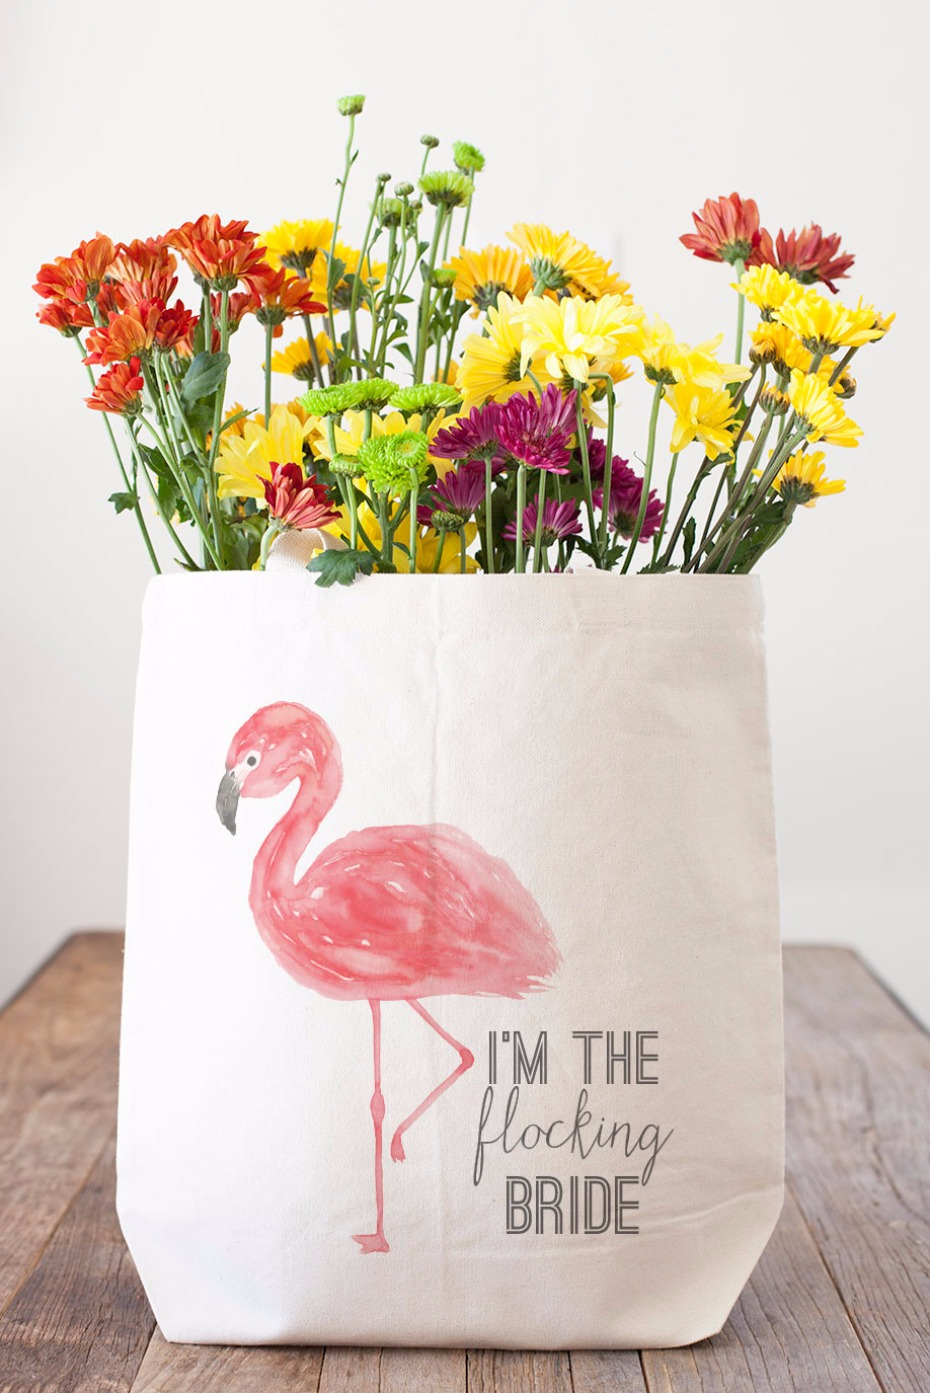 Flocking bride tote bag from Wedding Chicks Shop